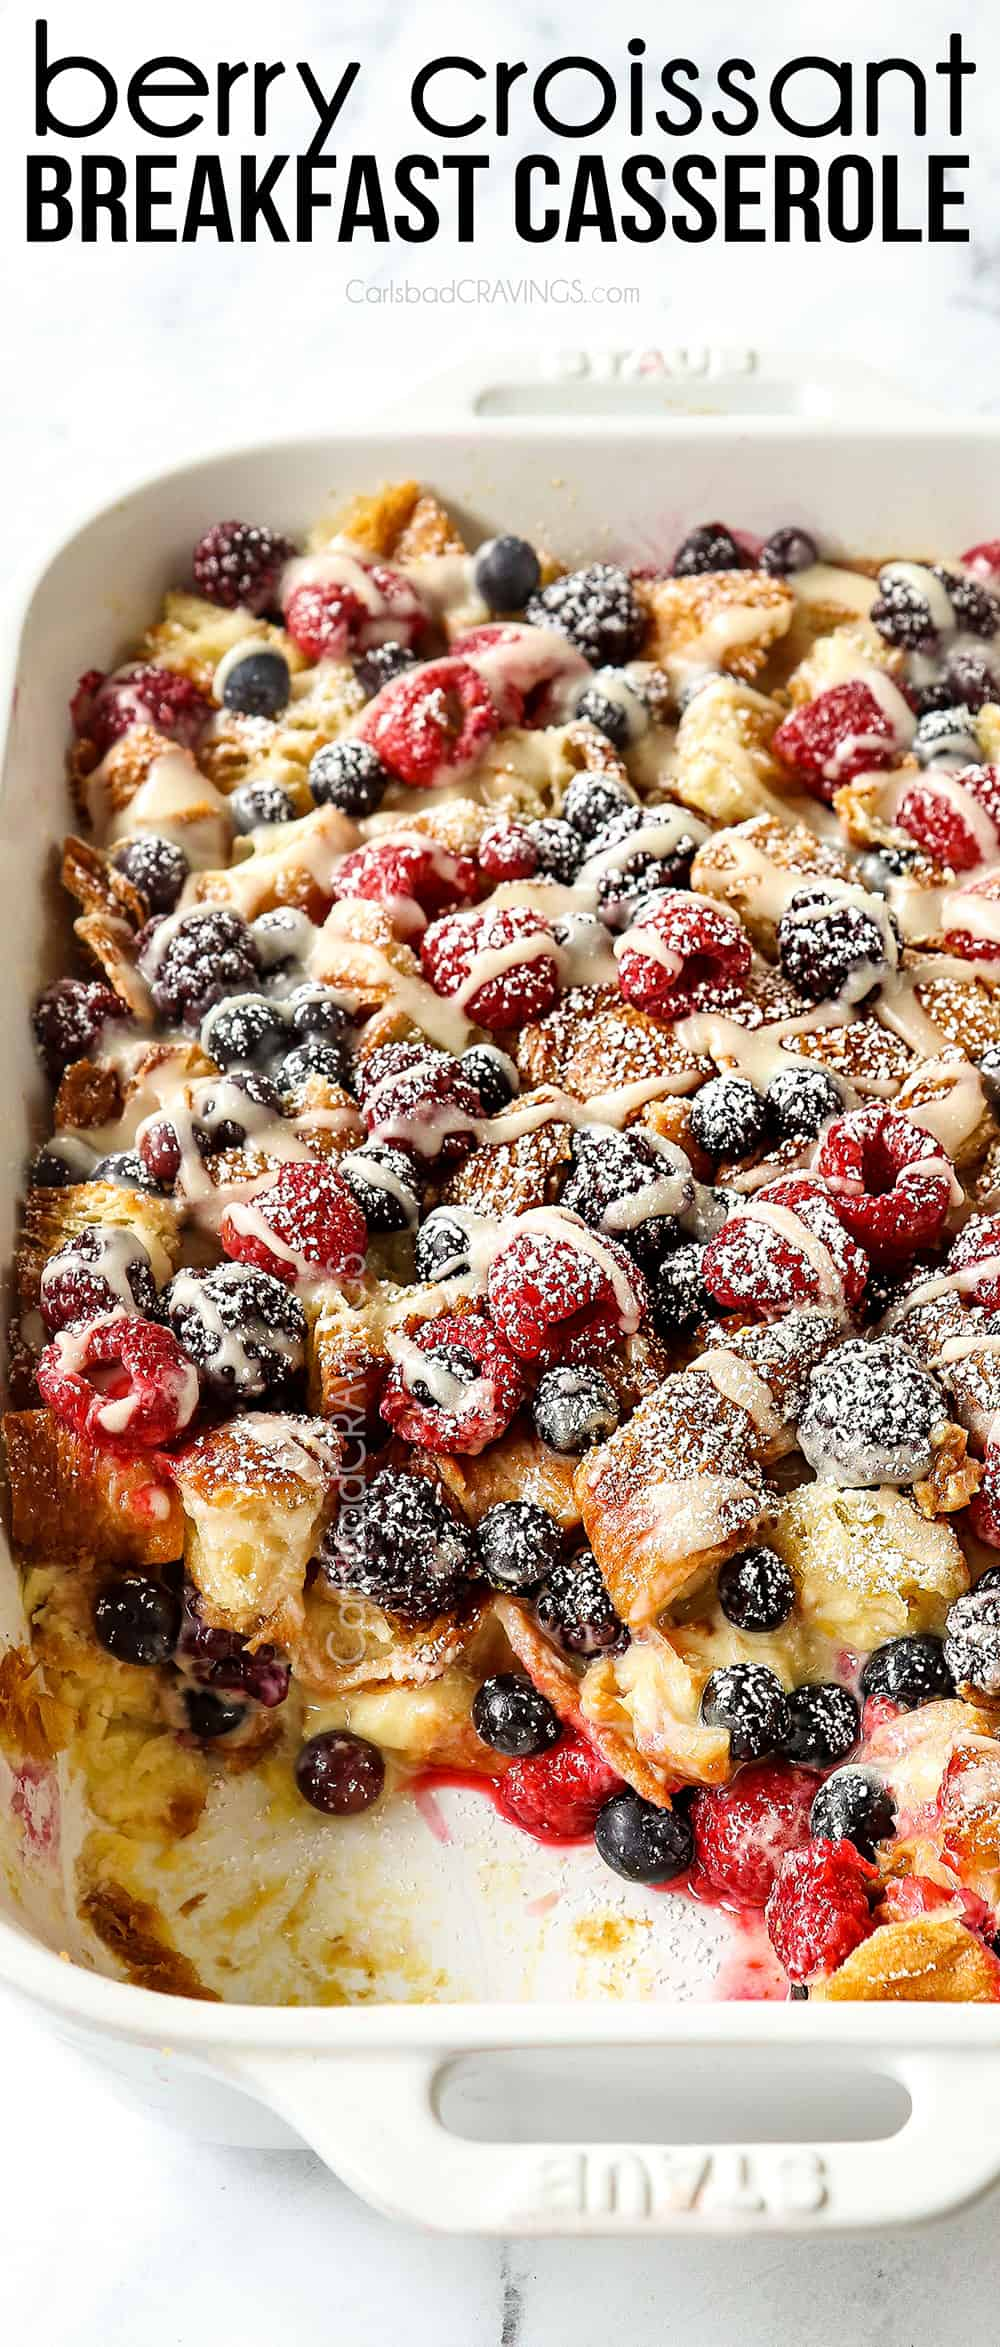 top view of sweet breakfast casserole with croissants, berries and lemon drizzle in a white casserole dish